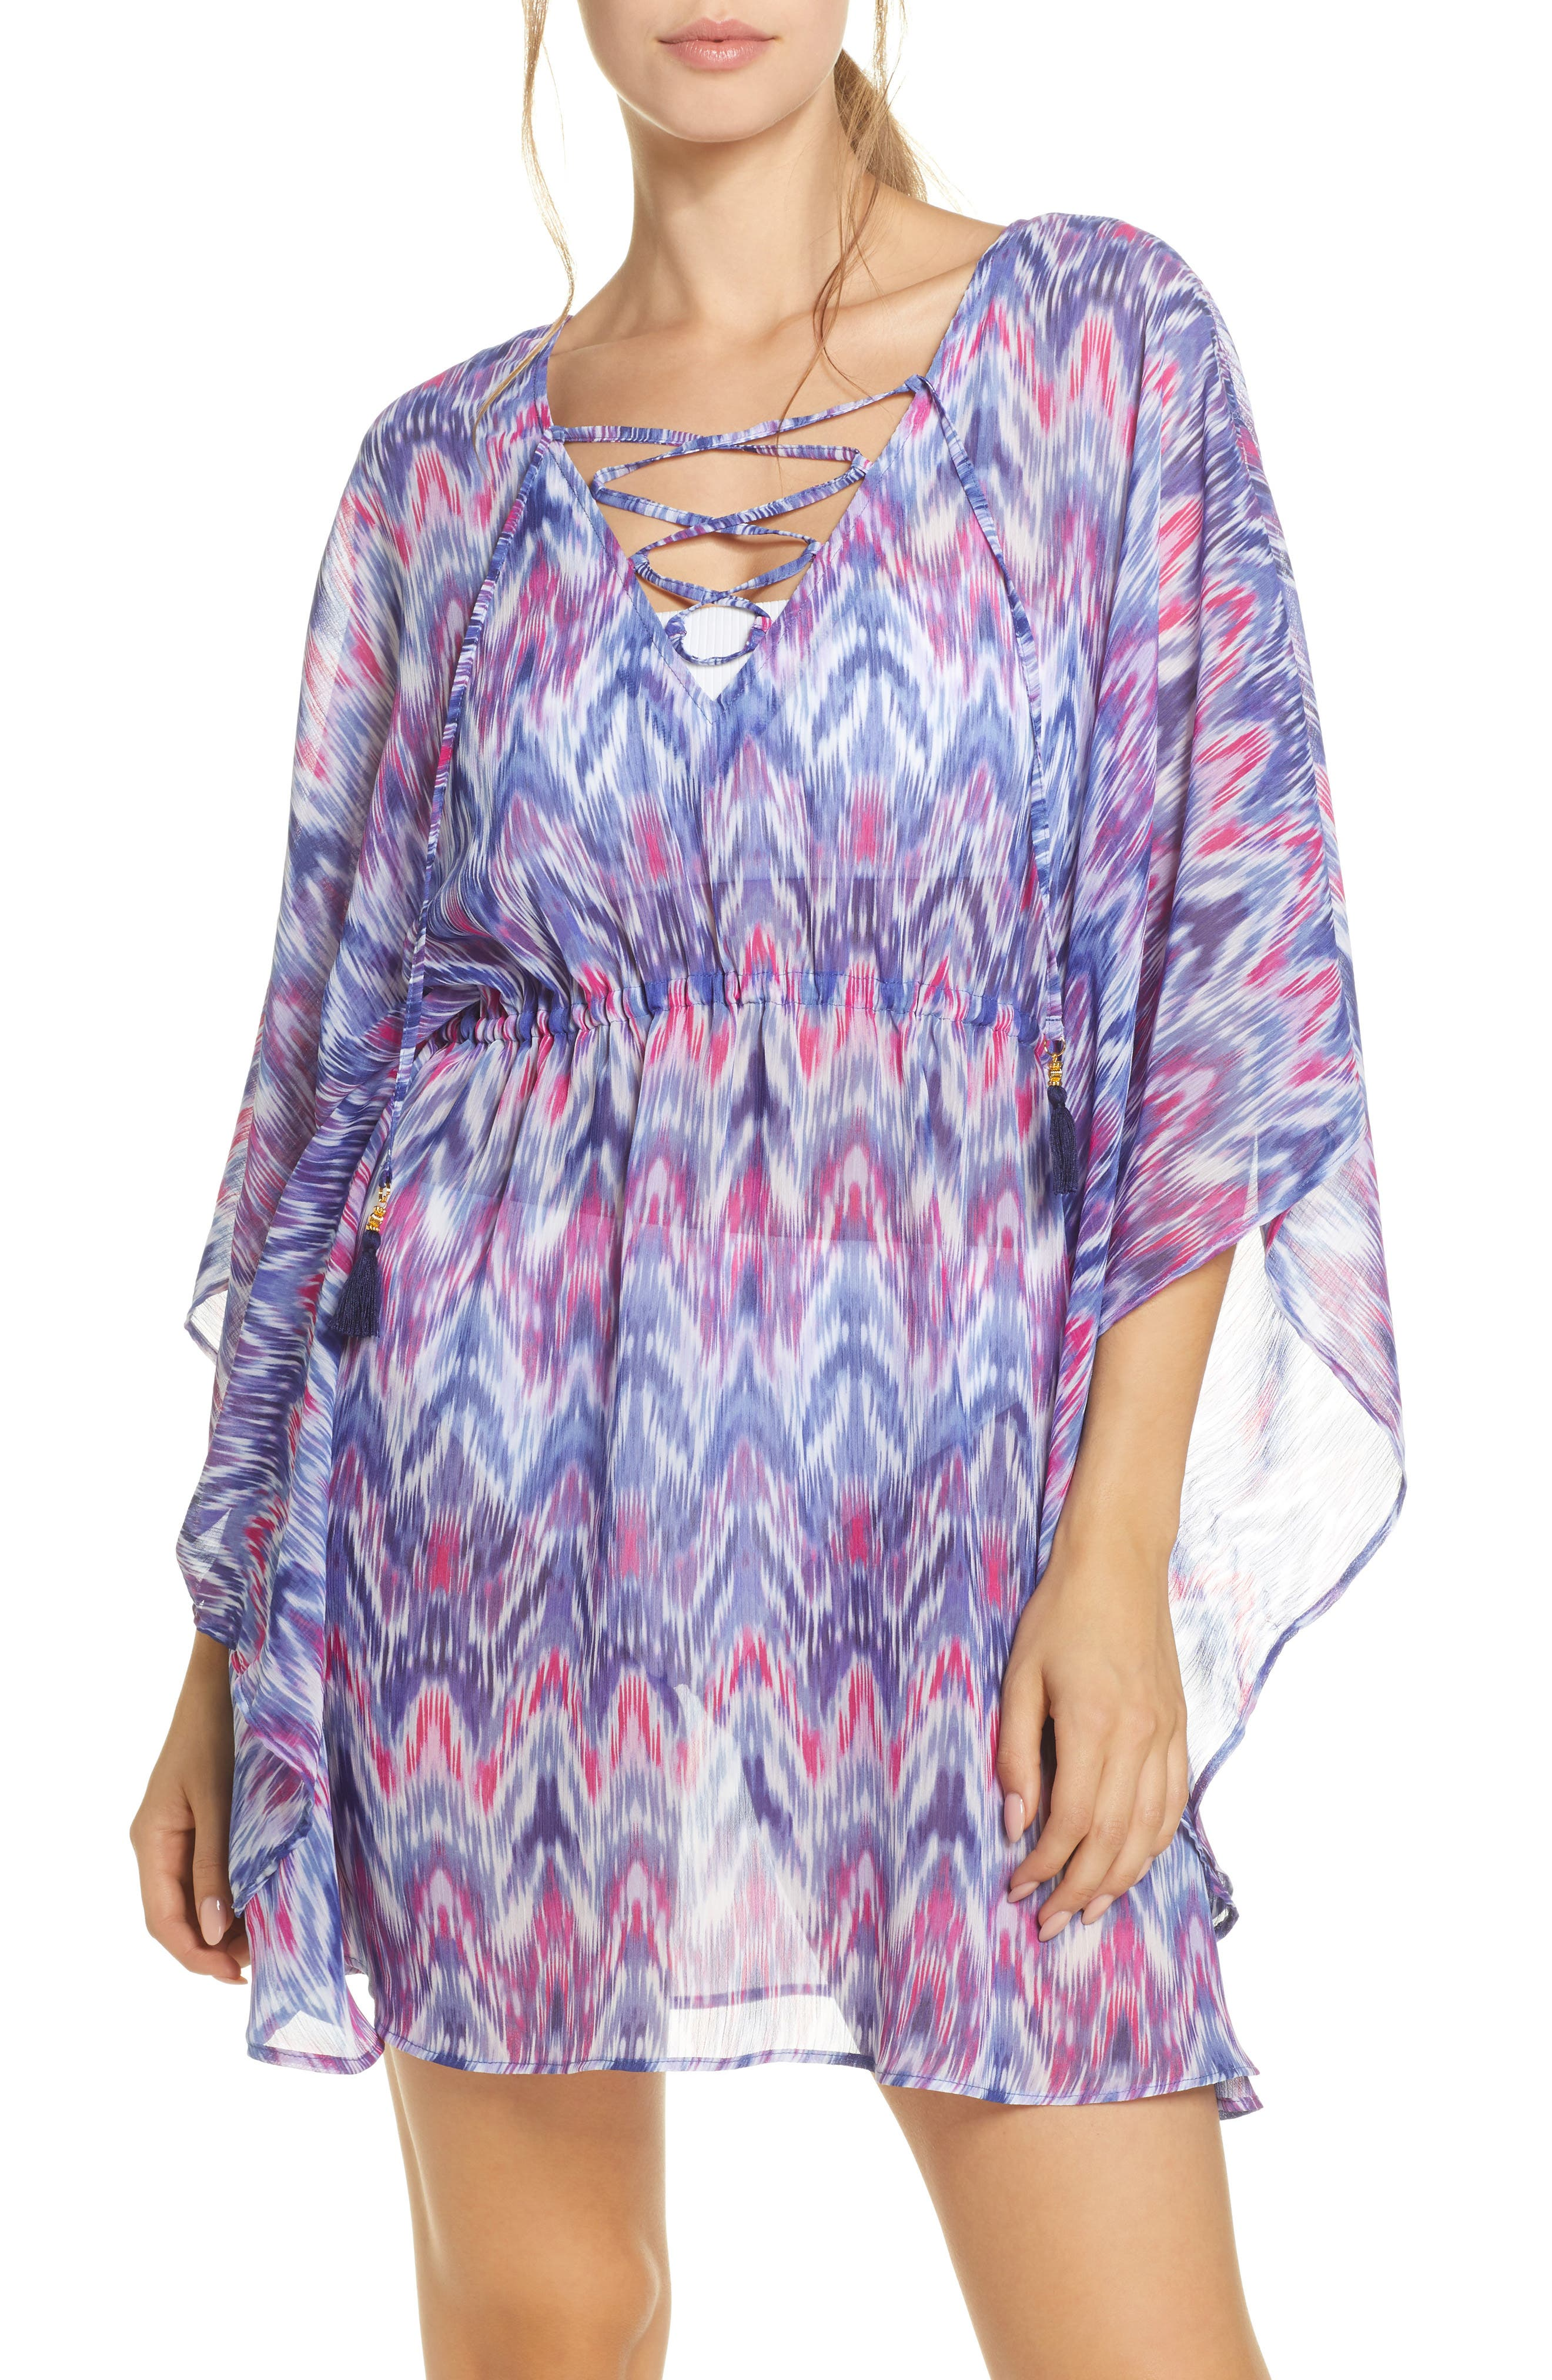 Image of Tommy Bahama Mirage Lace Front Tie Dye Cover-Up Tunic